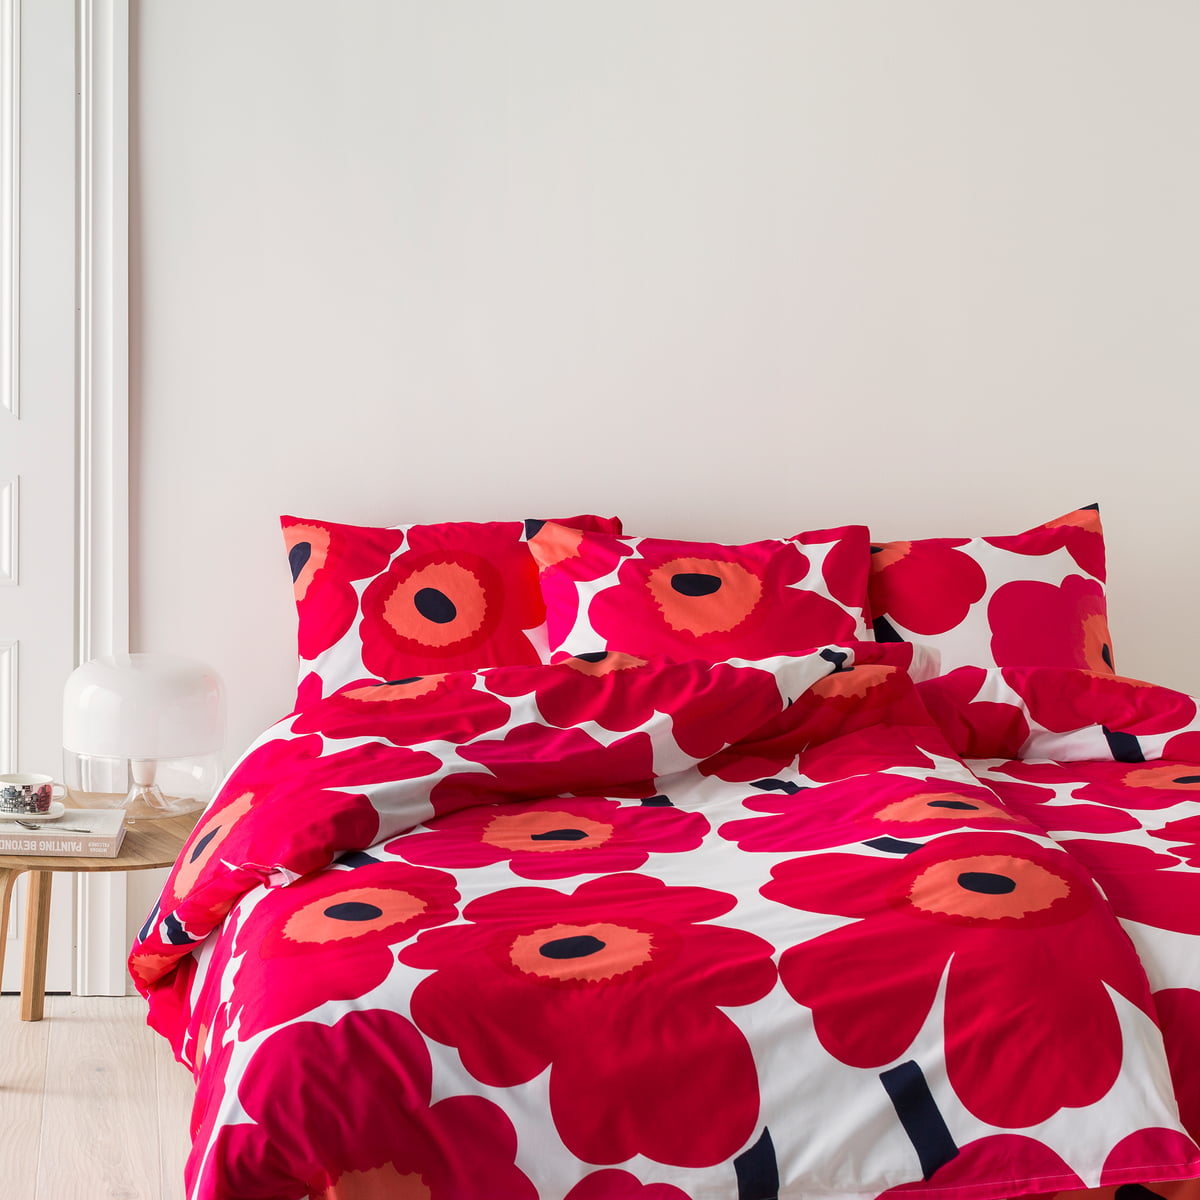 set bath bedding for less duvet marimekko cover covers overstock cat unikko brand